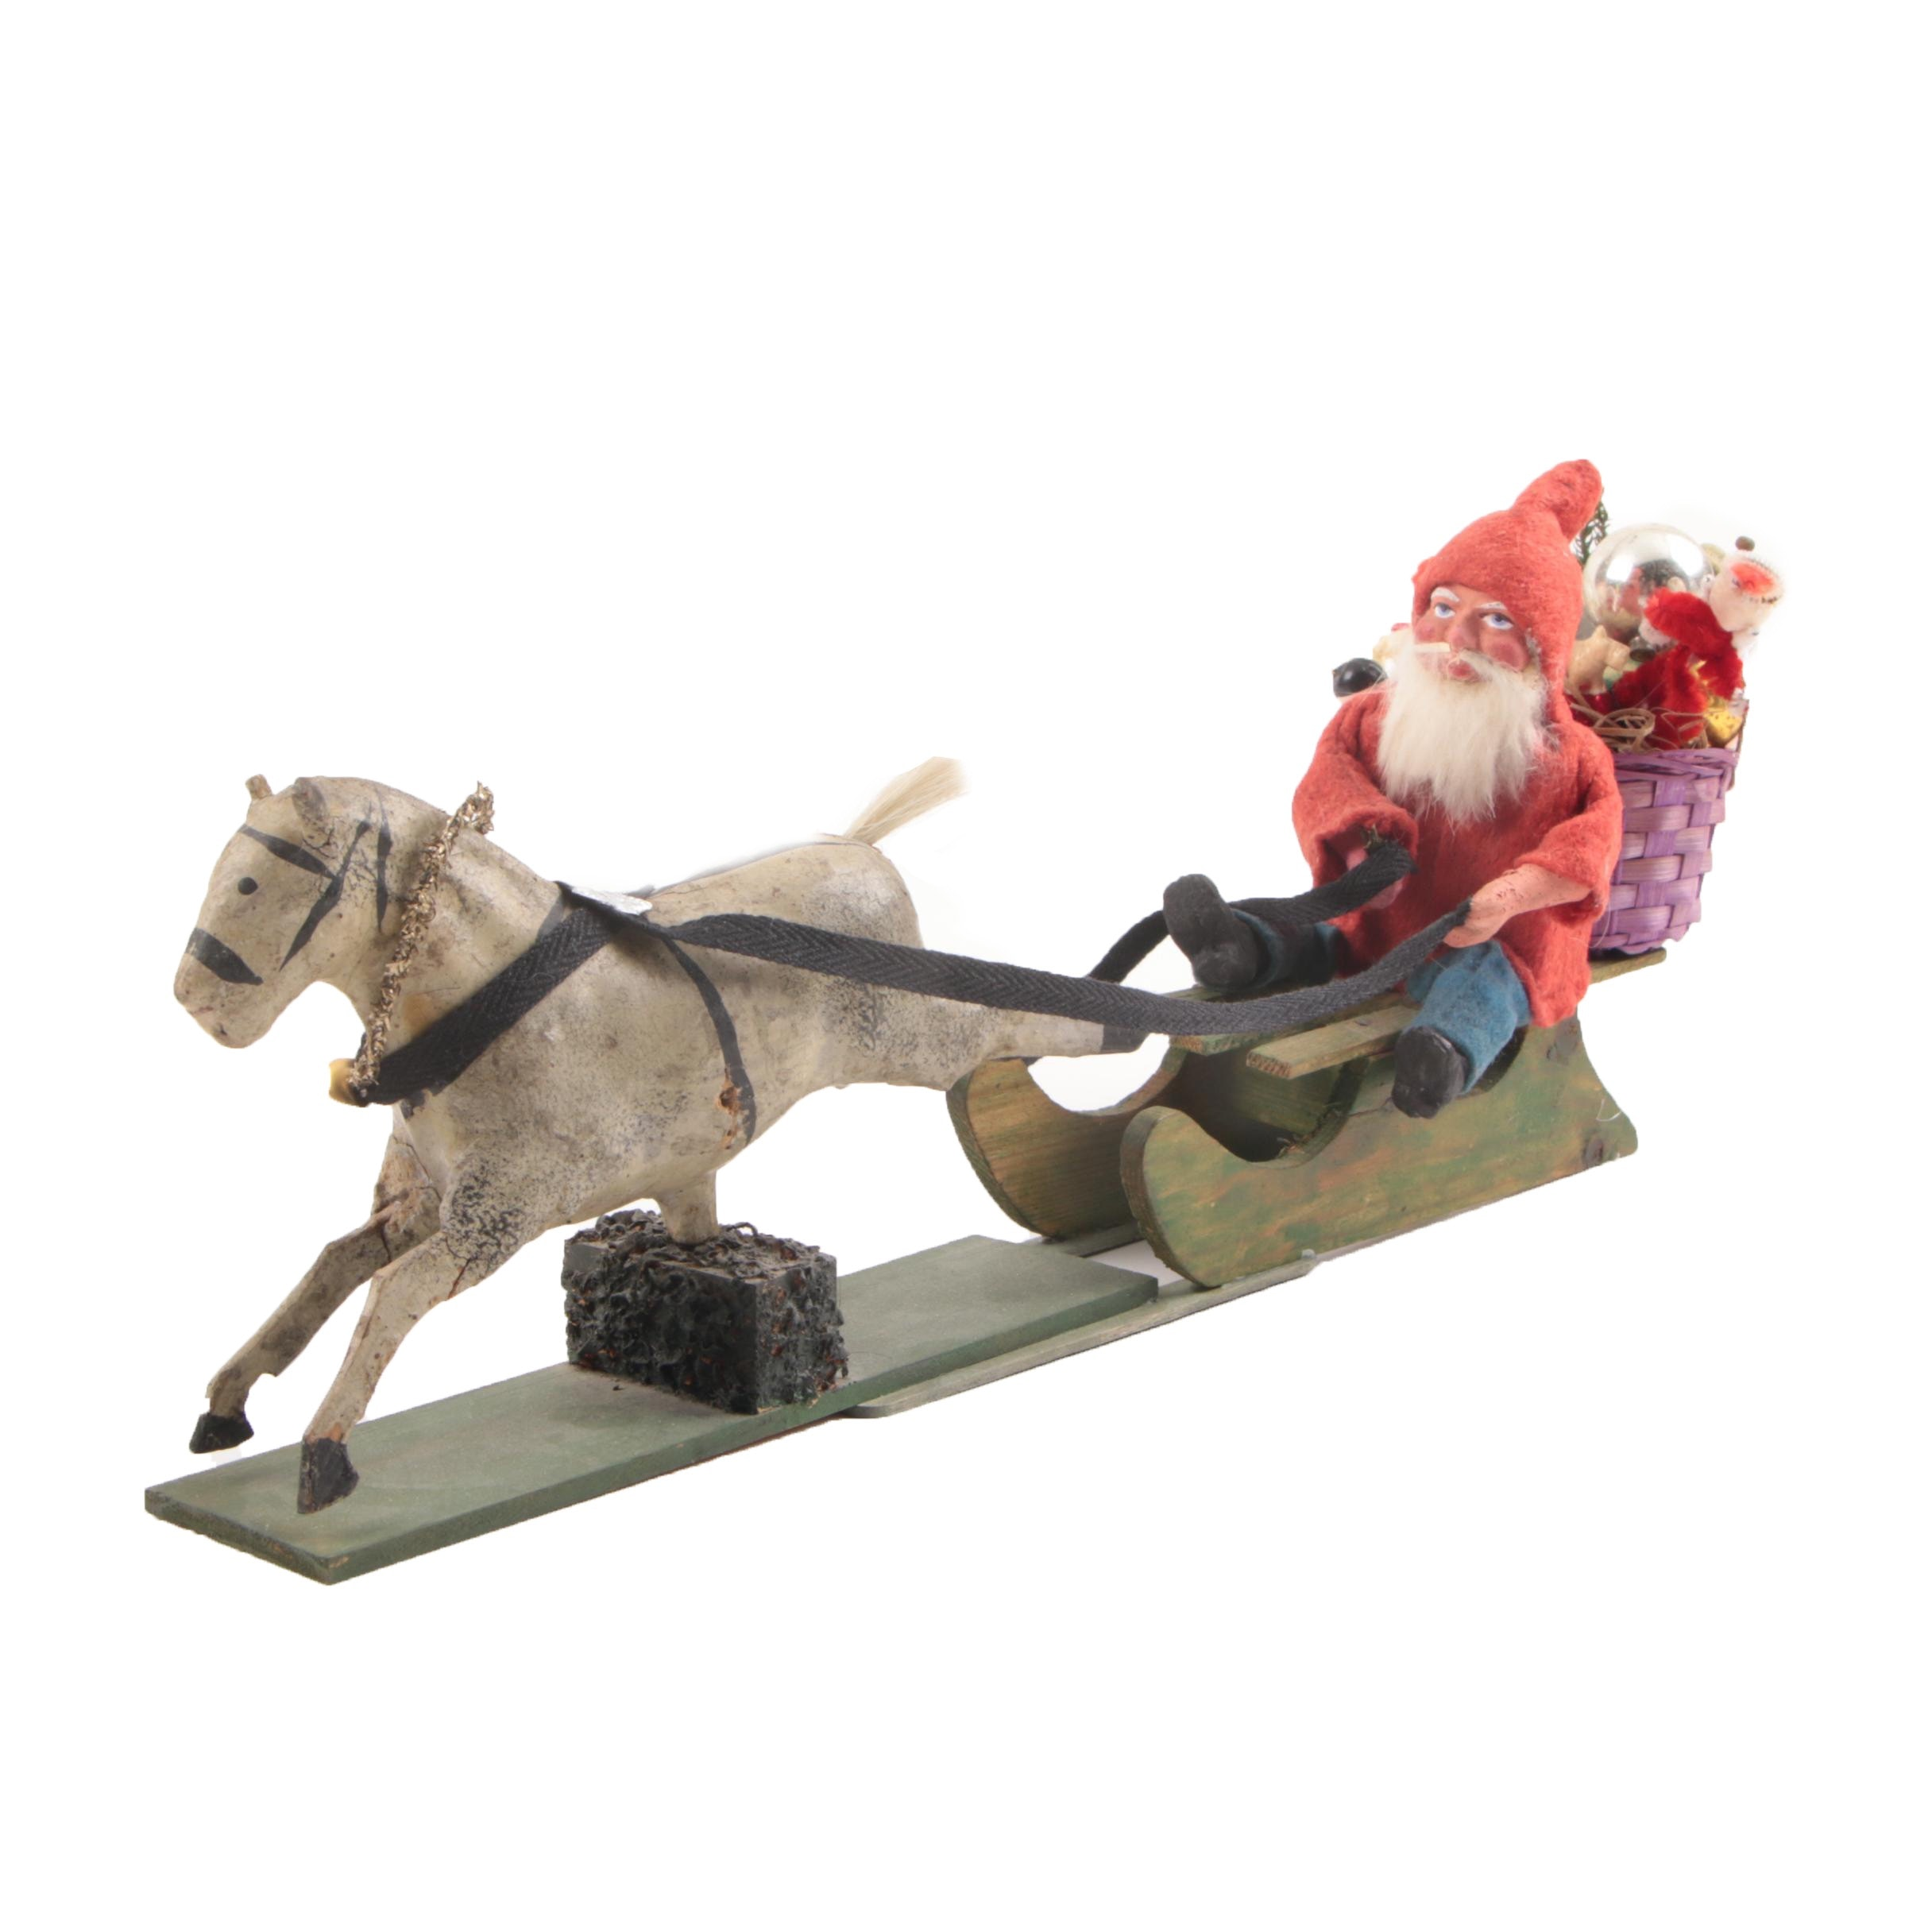 Antique German Christmas Belsnickle on Horse Drawn Sleigh